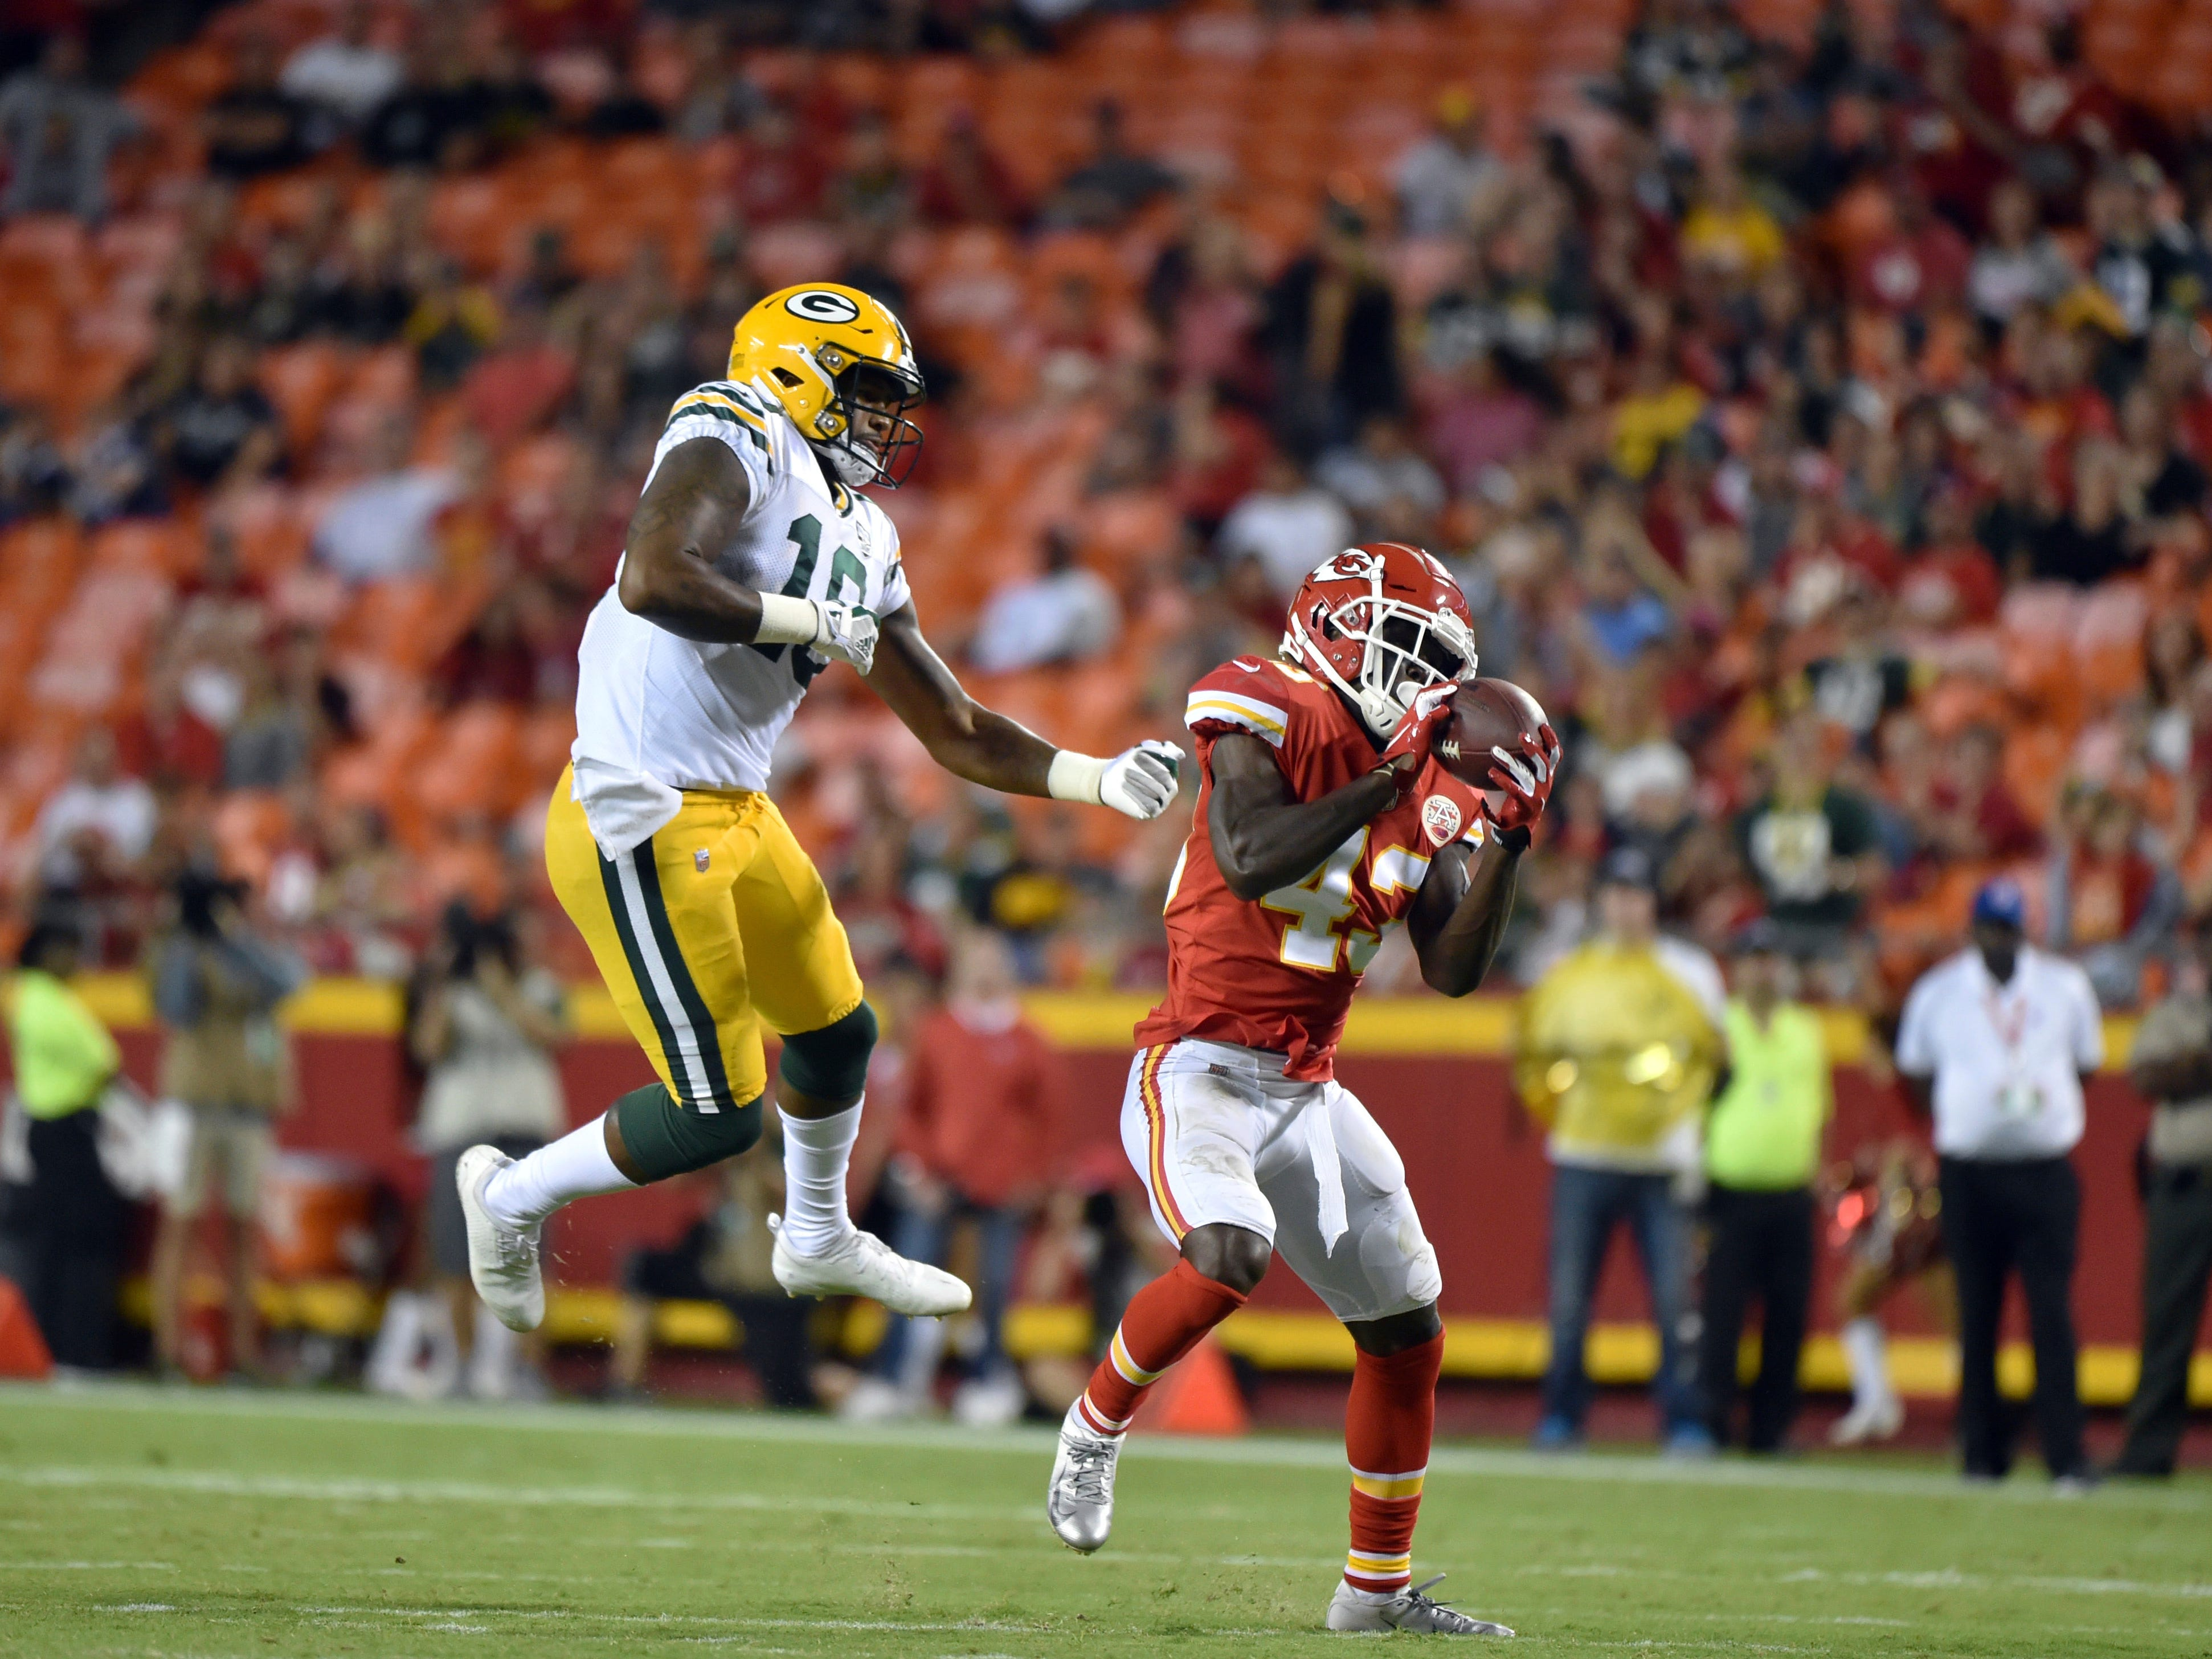 Kansas City Chiefs cornerback Makinton Dorleant (43) intercepts a pass intended for Green Bay Packers wide receiver DeAngelo Yancey (10), and runs for a touchdown, during the second half of an NFL preseason football game in Kansas City, Mo., Thursday, Aug. 30, 2018.